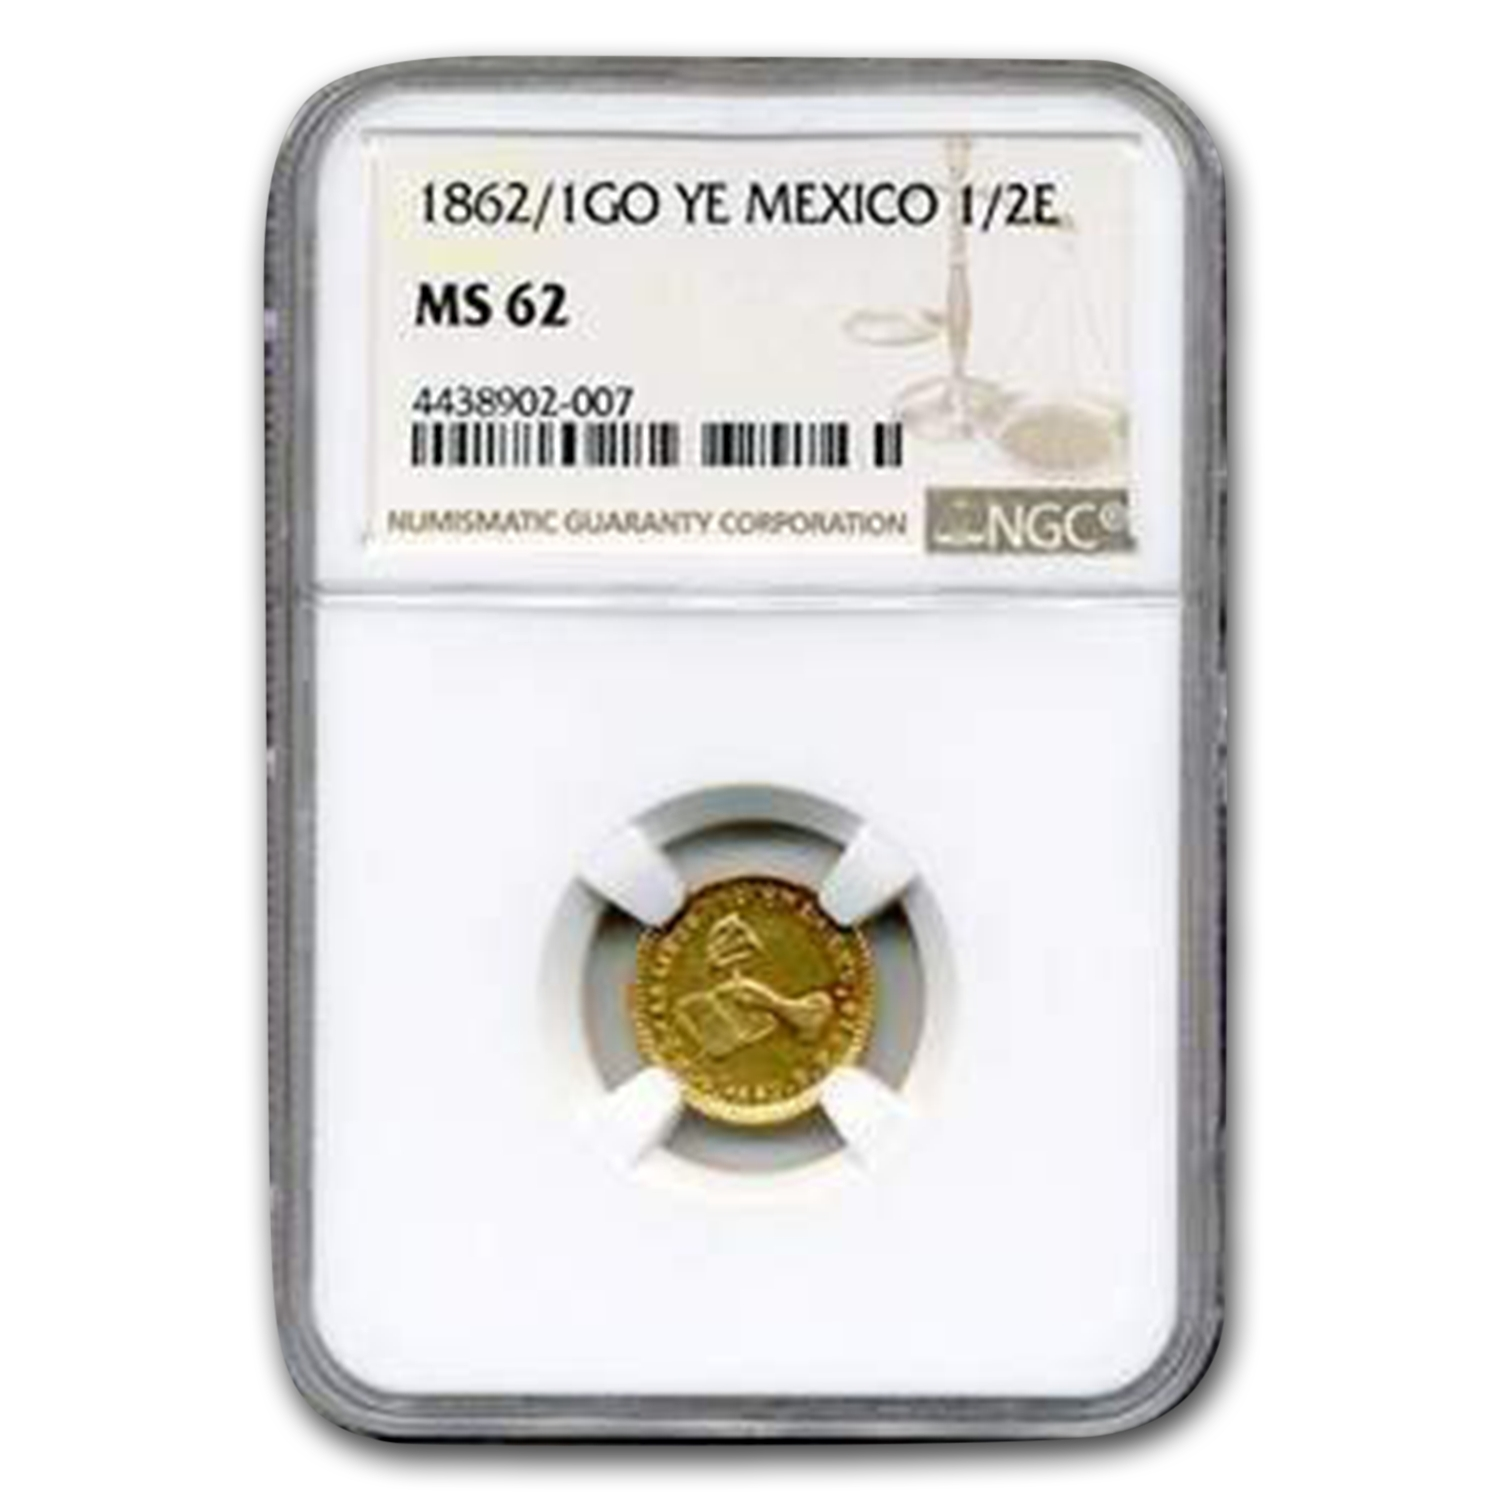 1862/1 Go-YE Mexico Gold 1/2 Escudo MS-62 NGC